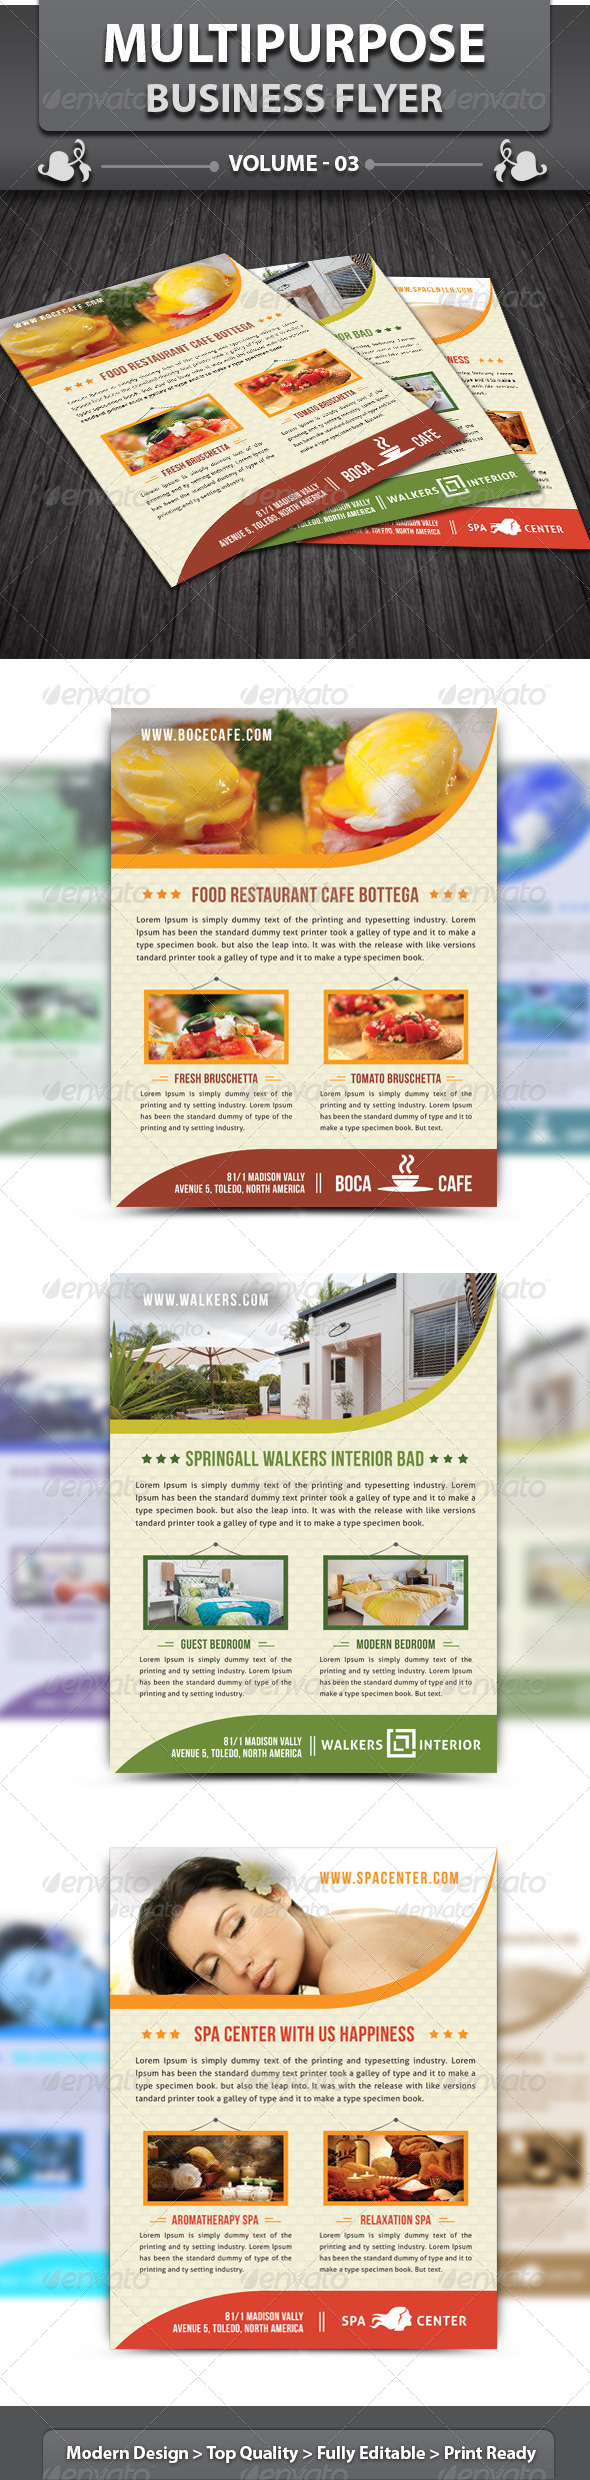 Multipurpose Business Flyer V 3 - Corporate Flyers